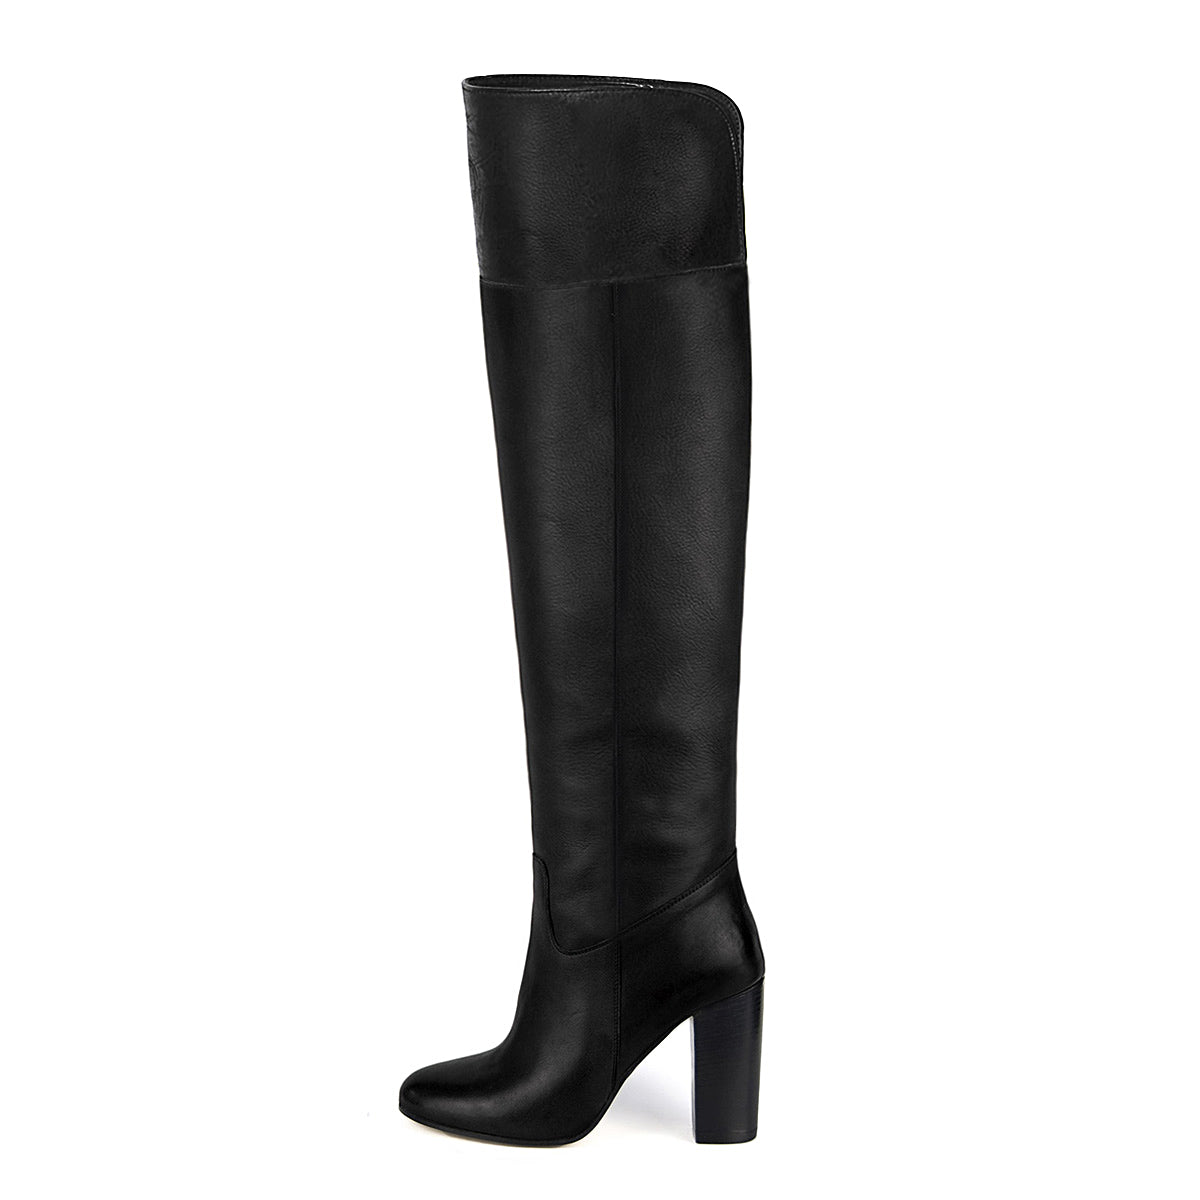 Lunaria, black - wide calf boots, large fit boots, calf fitting boots, narrow calf boots